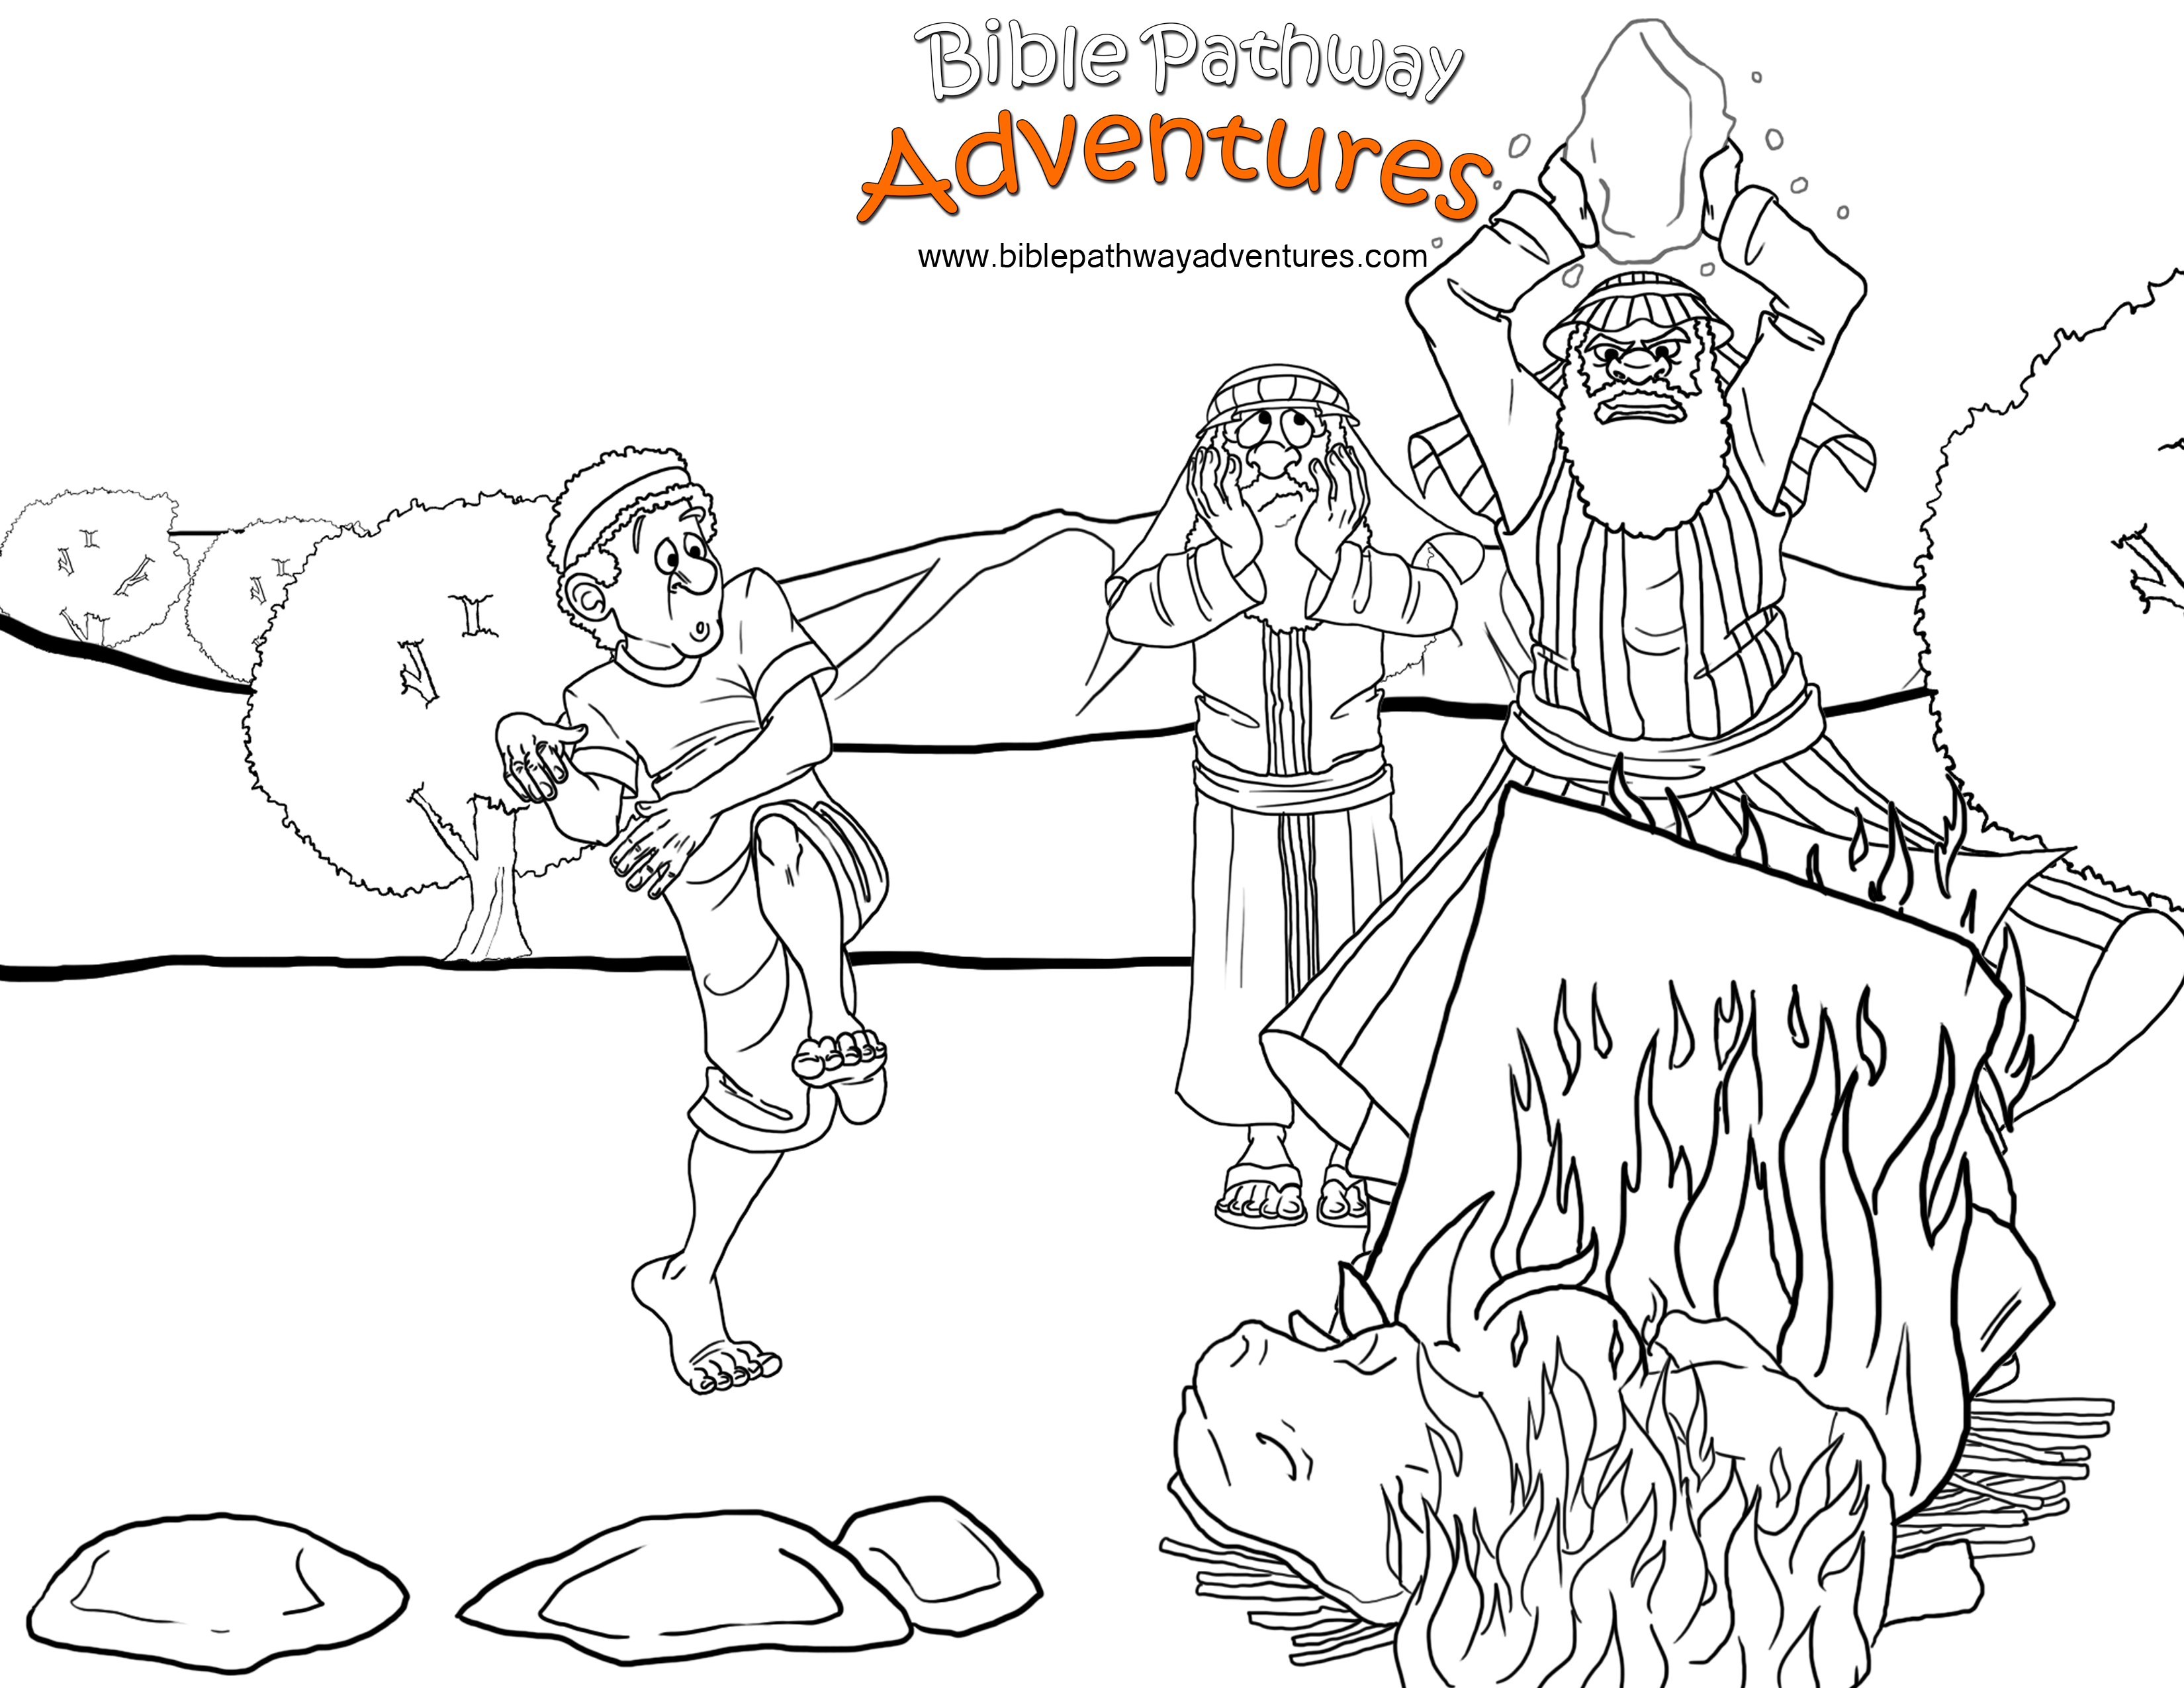 a coloring page for kids from the bible story path to freedom moses smashes